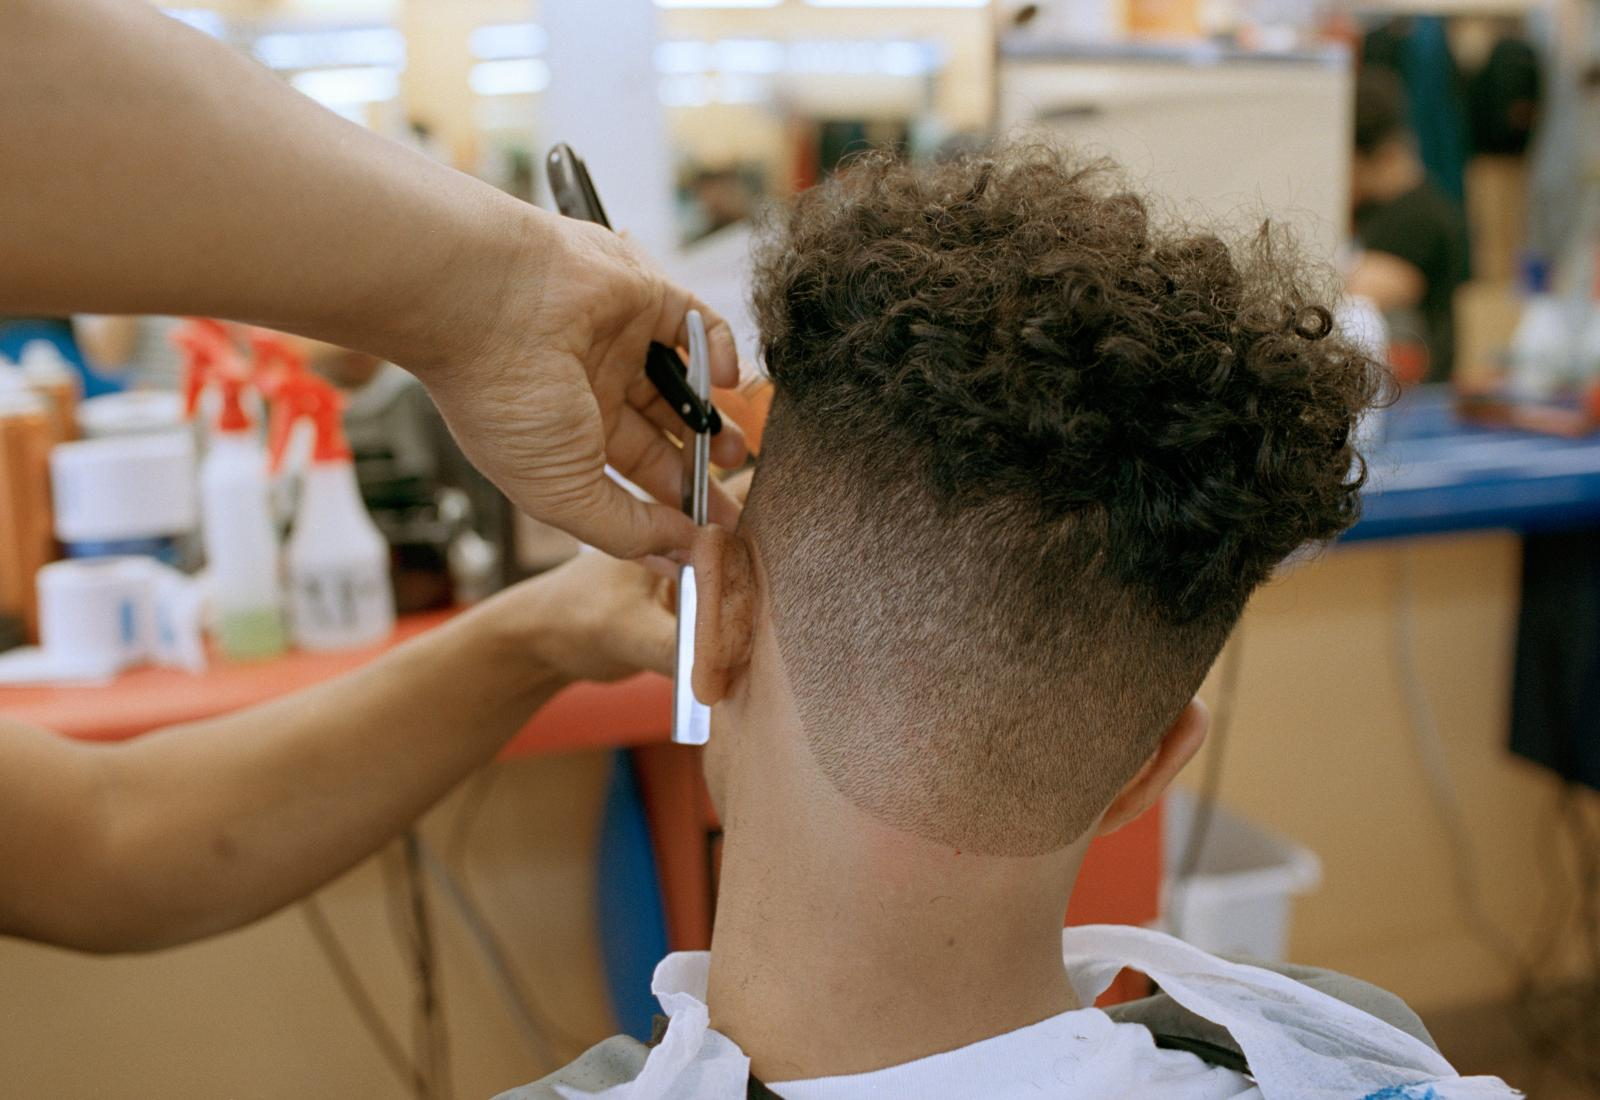 Ahmed Alzandhani gets a medium skin fade the day before a soccer match at a Dominican barbershop in the Flatbush neighborhood of Brooklyn, New York.